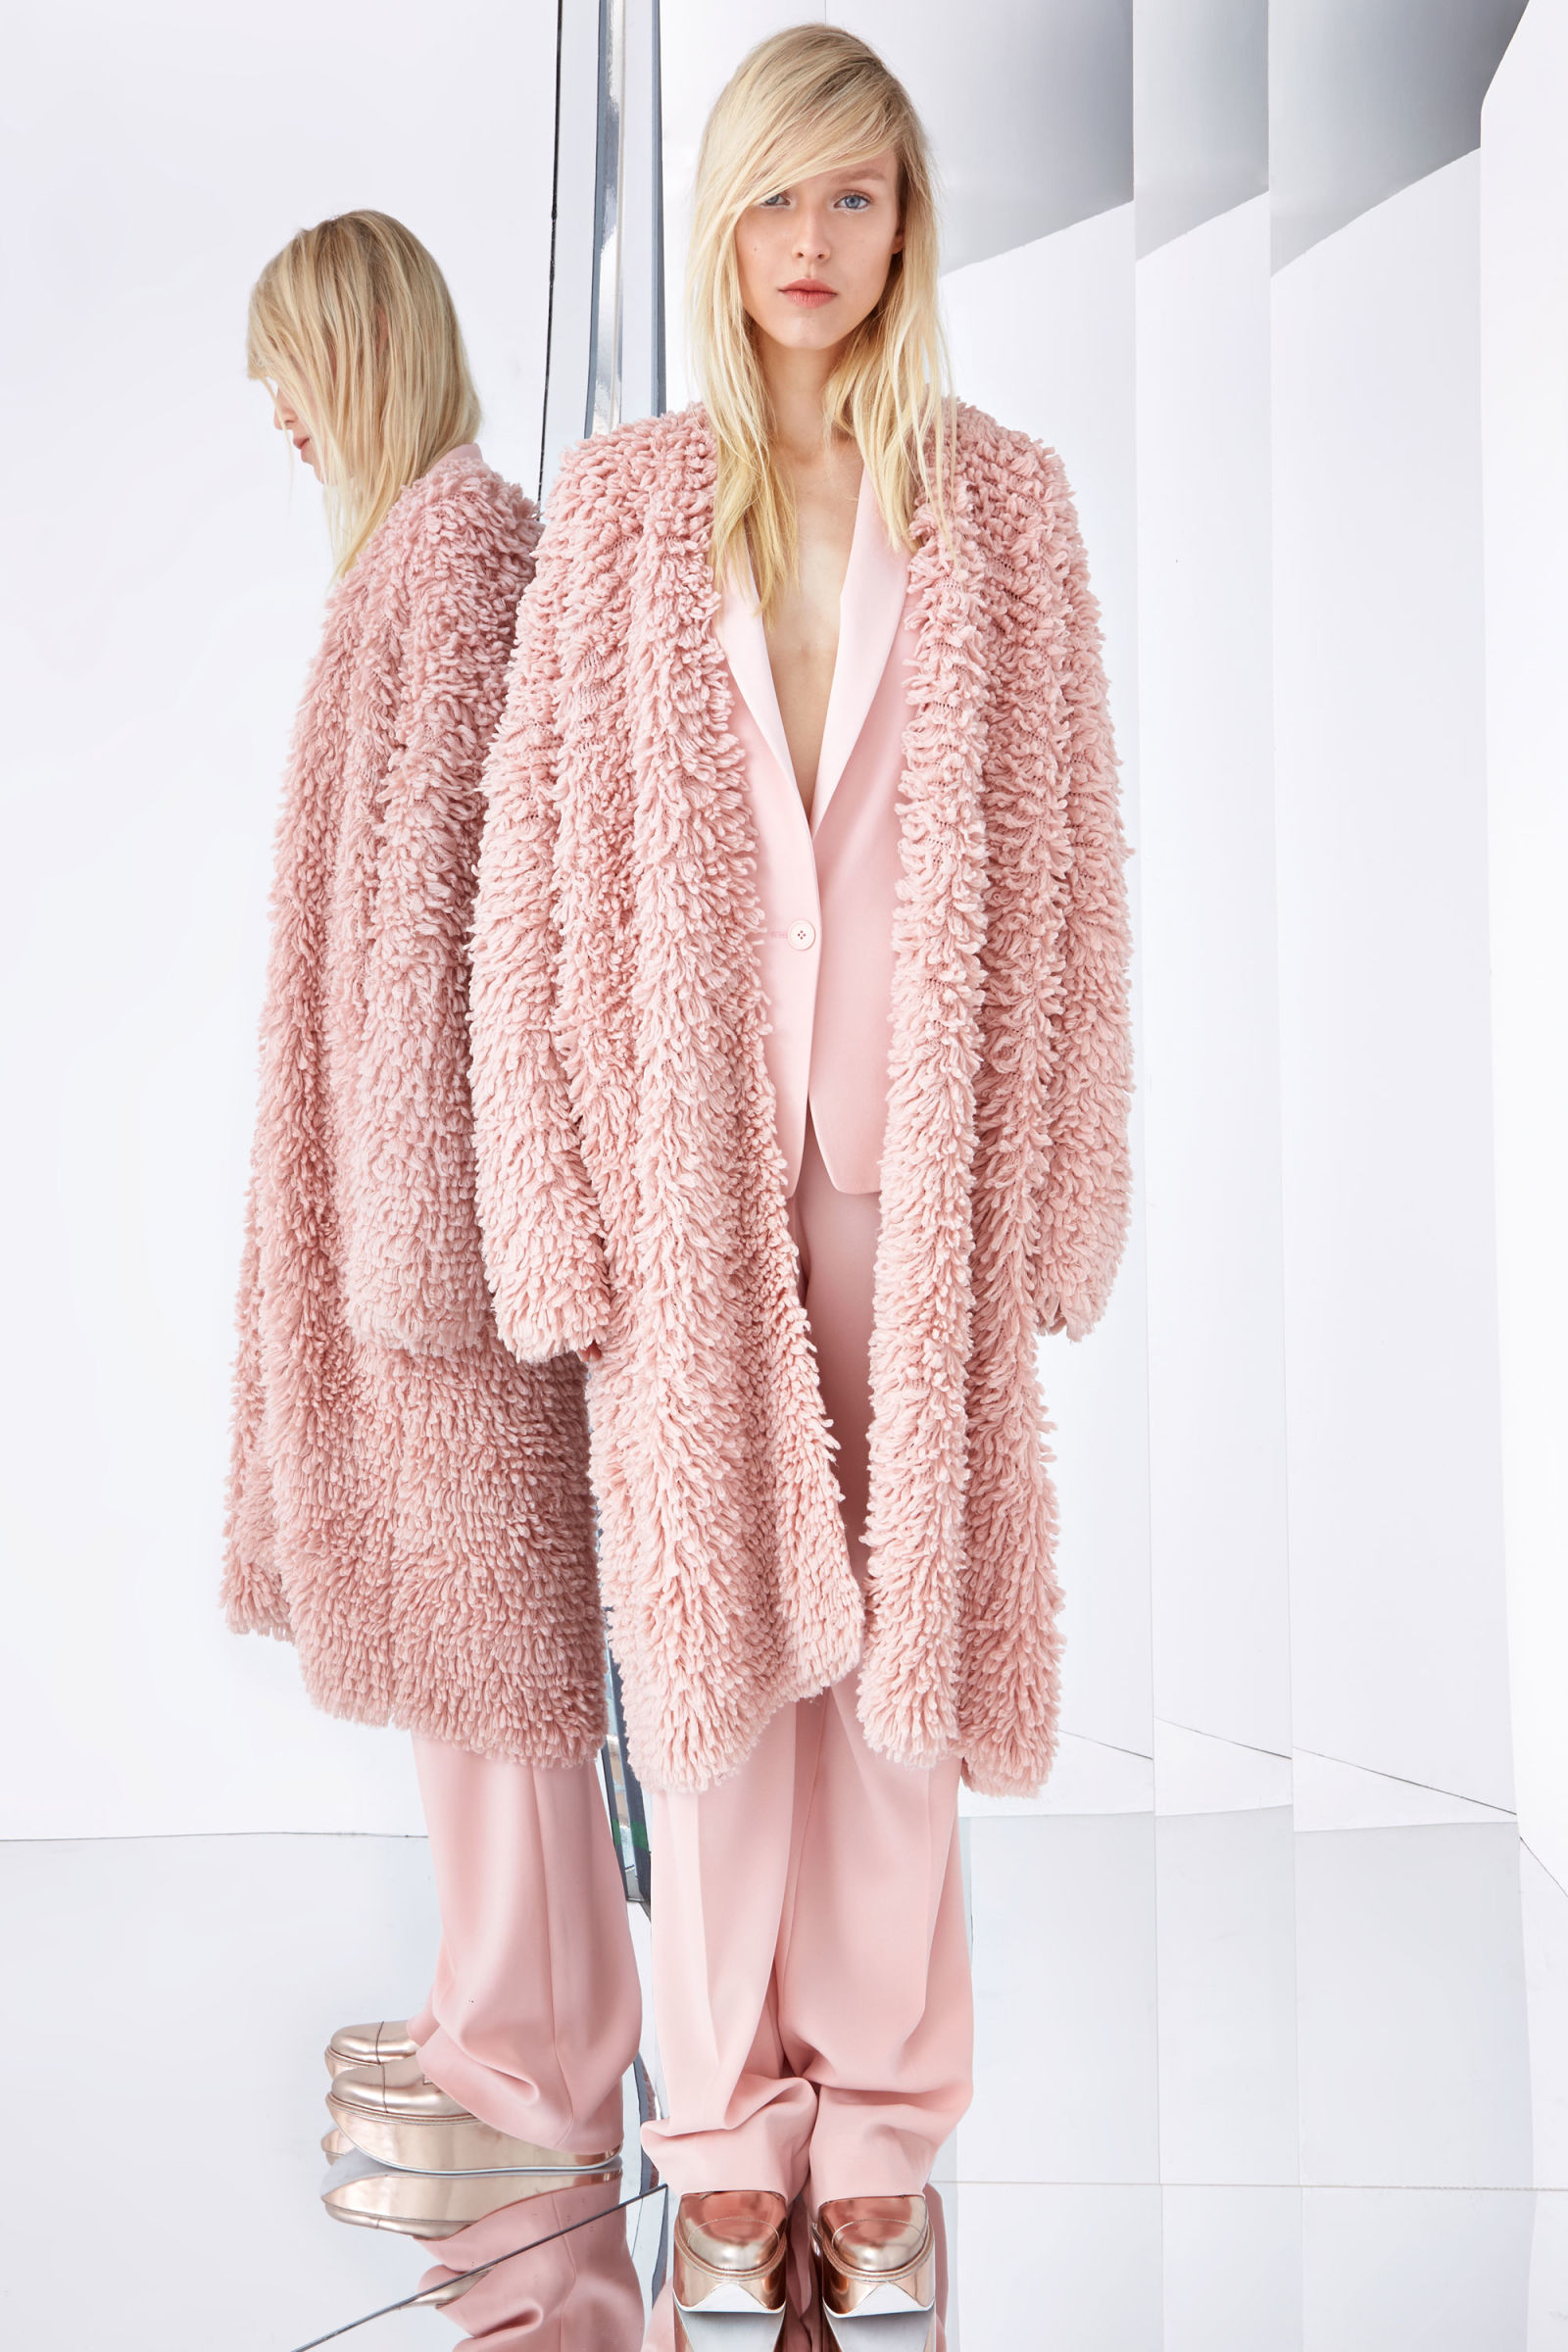 DKNY Resort 15 pink shaggy coat